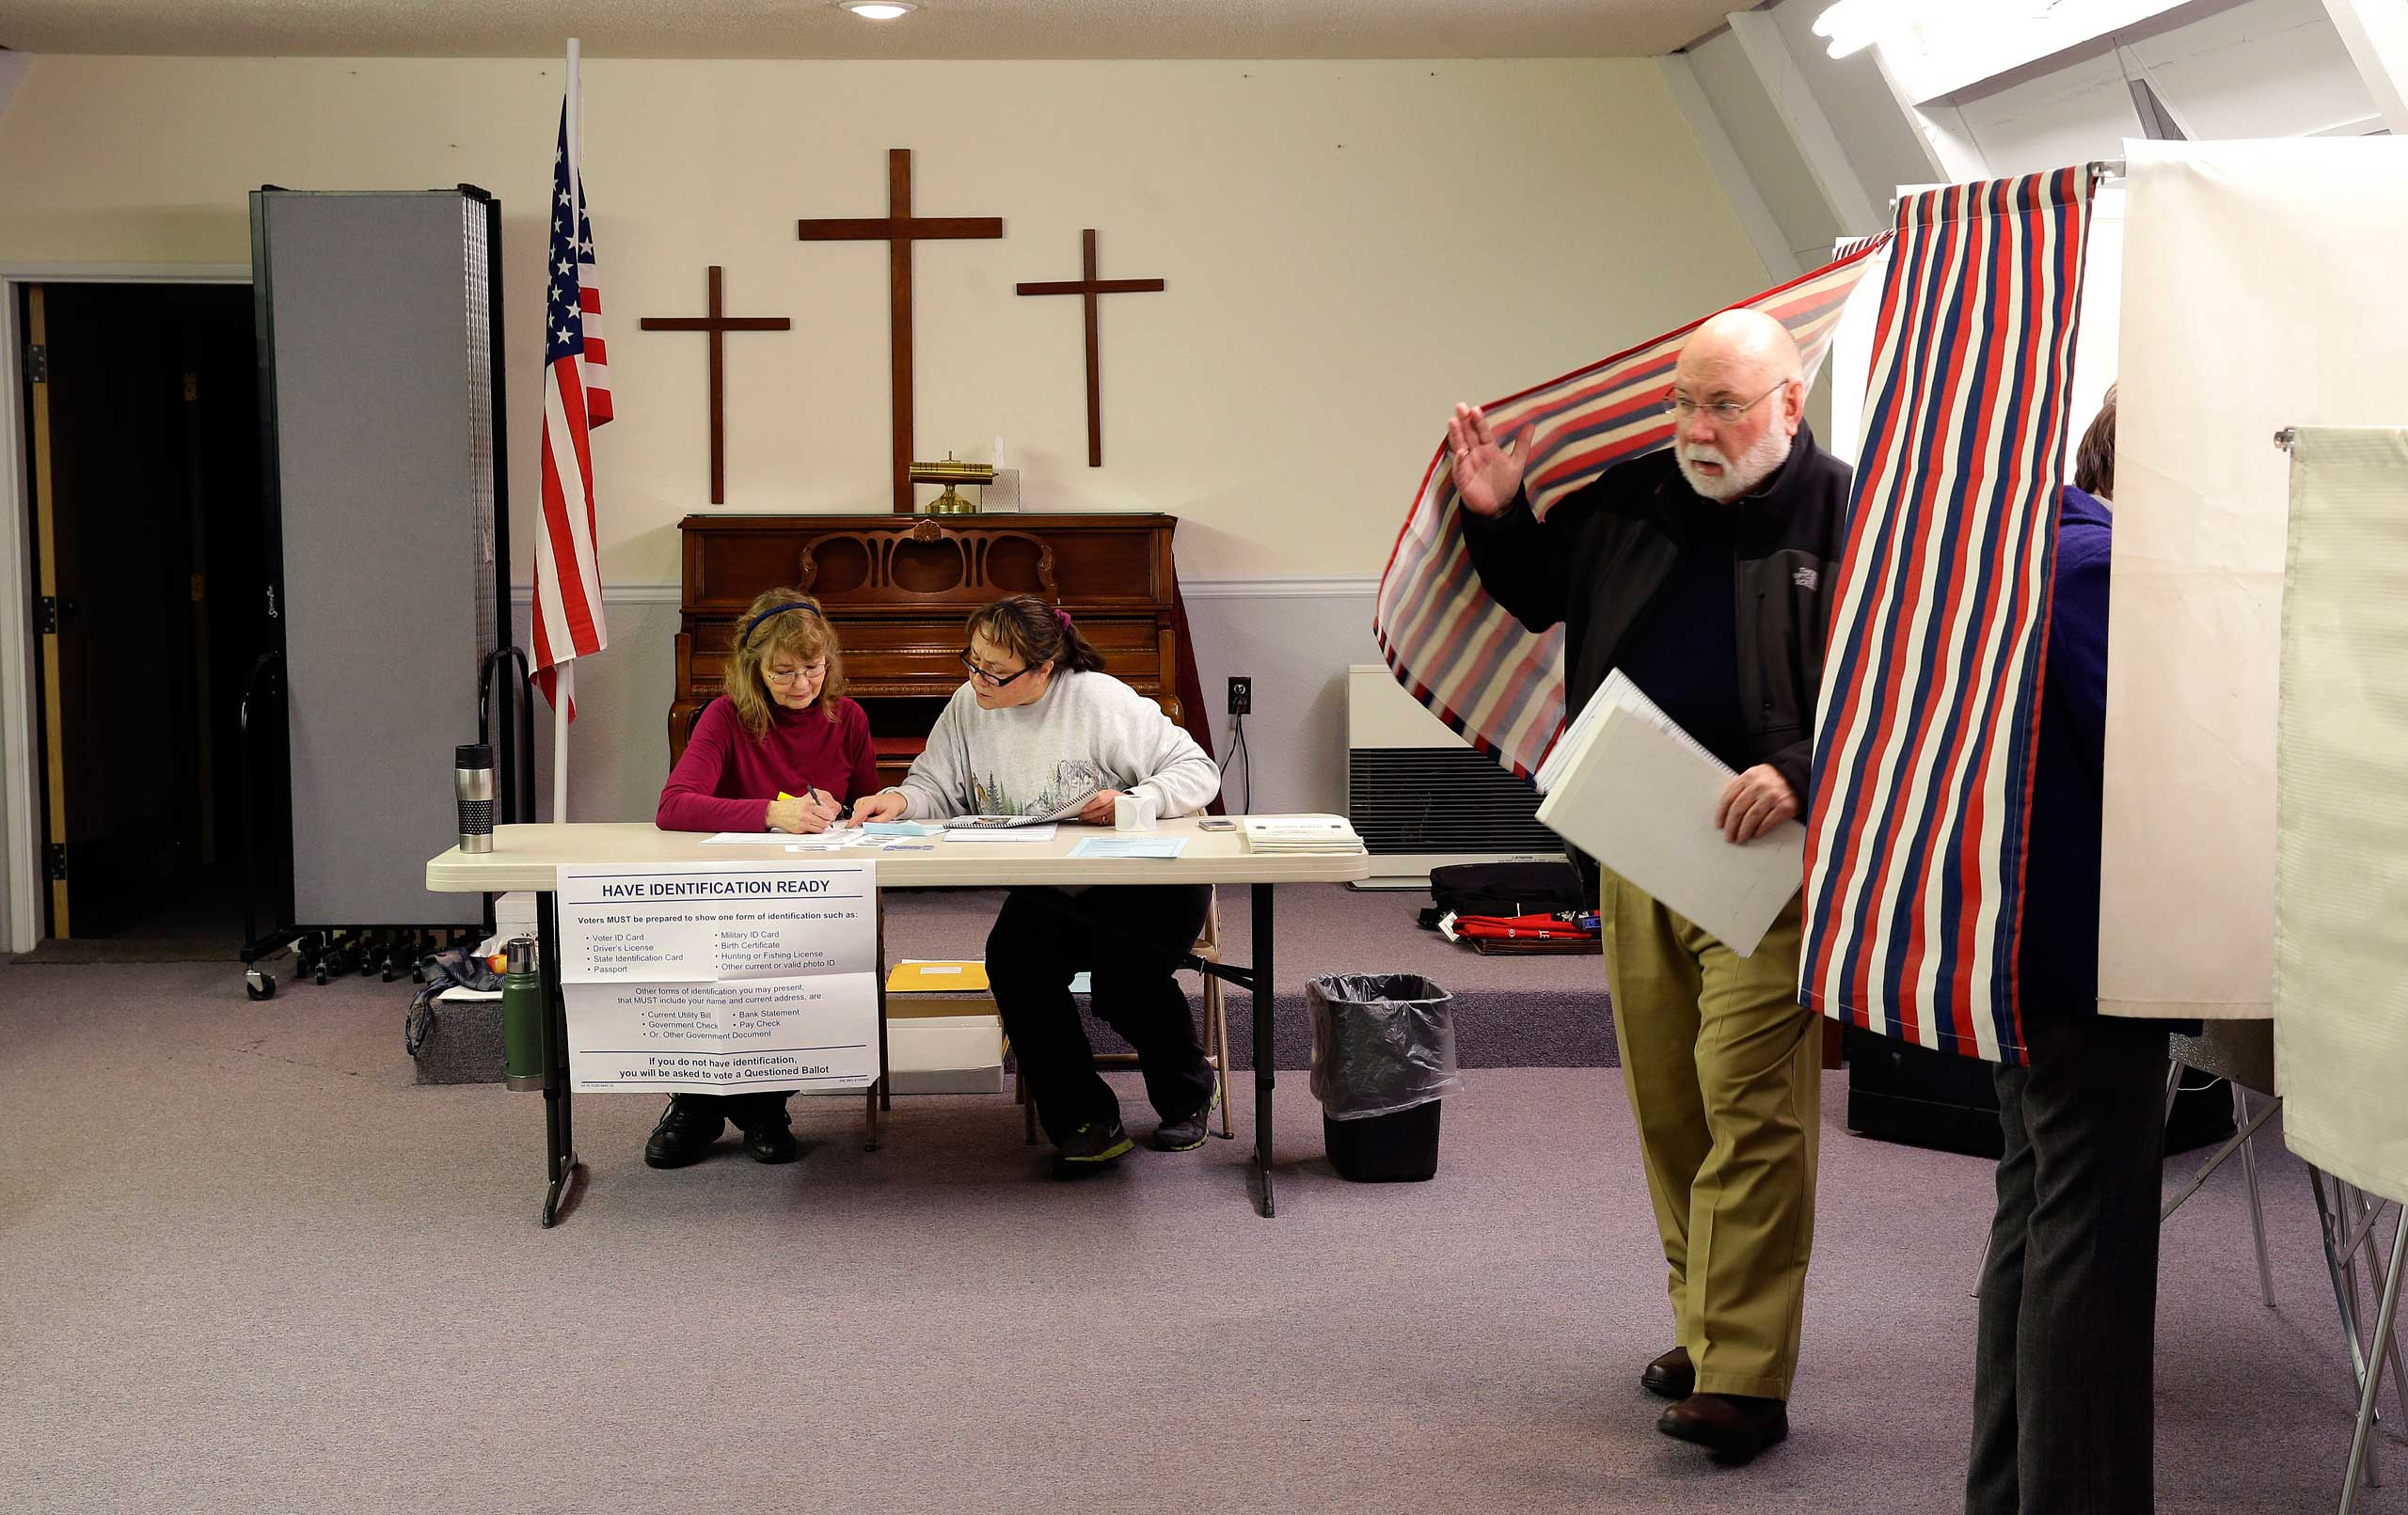 A voter leaves his booth as election workers GayLee Erickson, left, and Debbie Redmond, second from left, confer at the Valley Bible Chalet, in Indian, Alaska on Nov. 4, 2014.